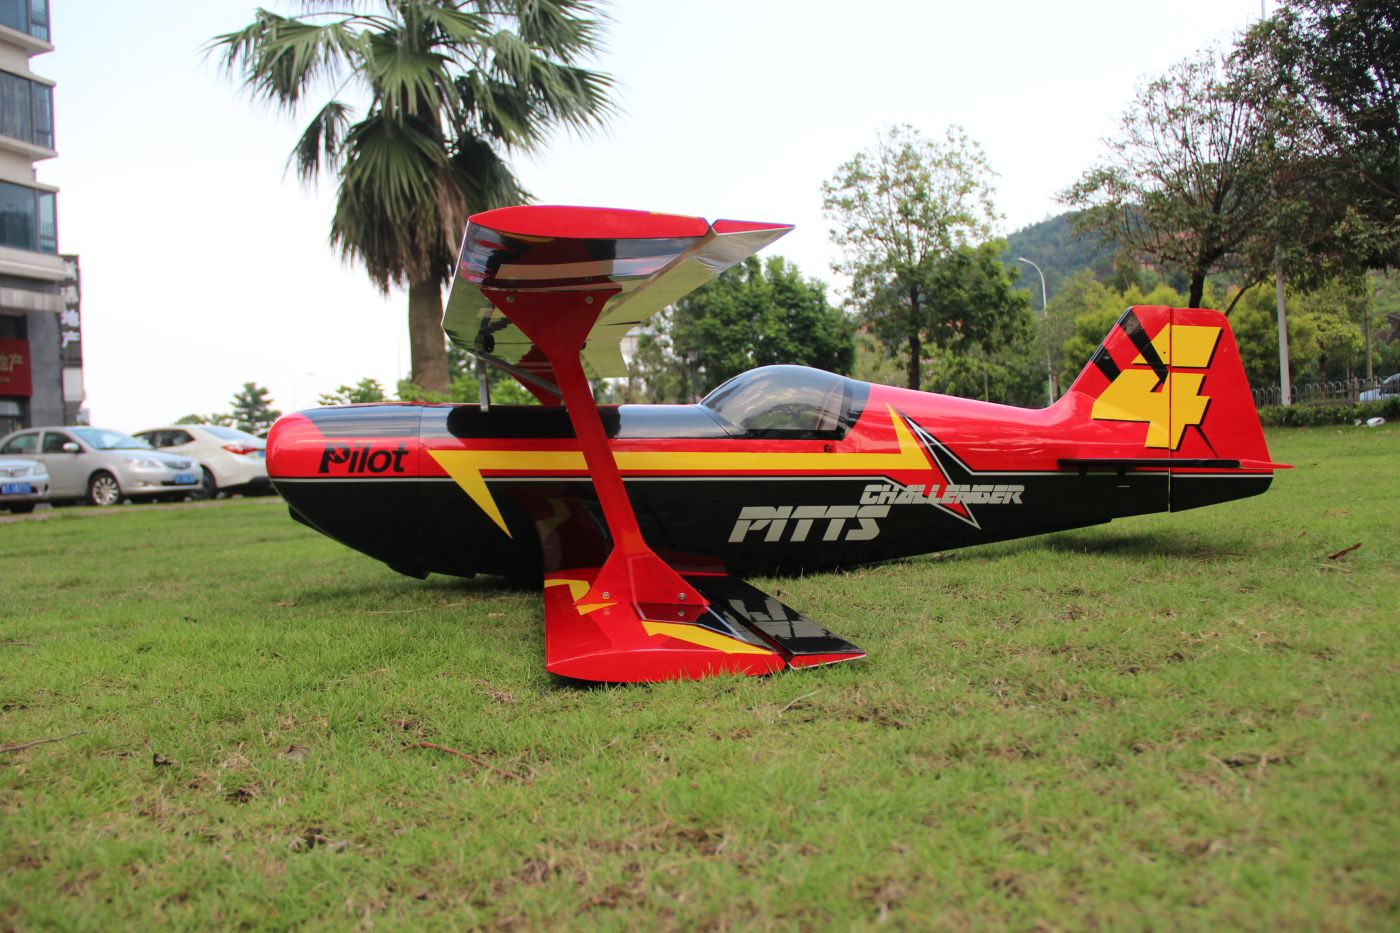 Pitts Challenger - 87